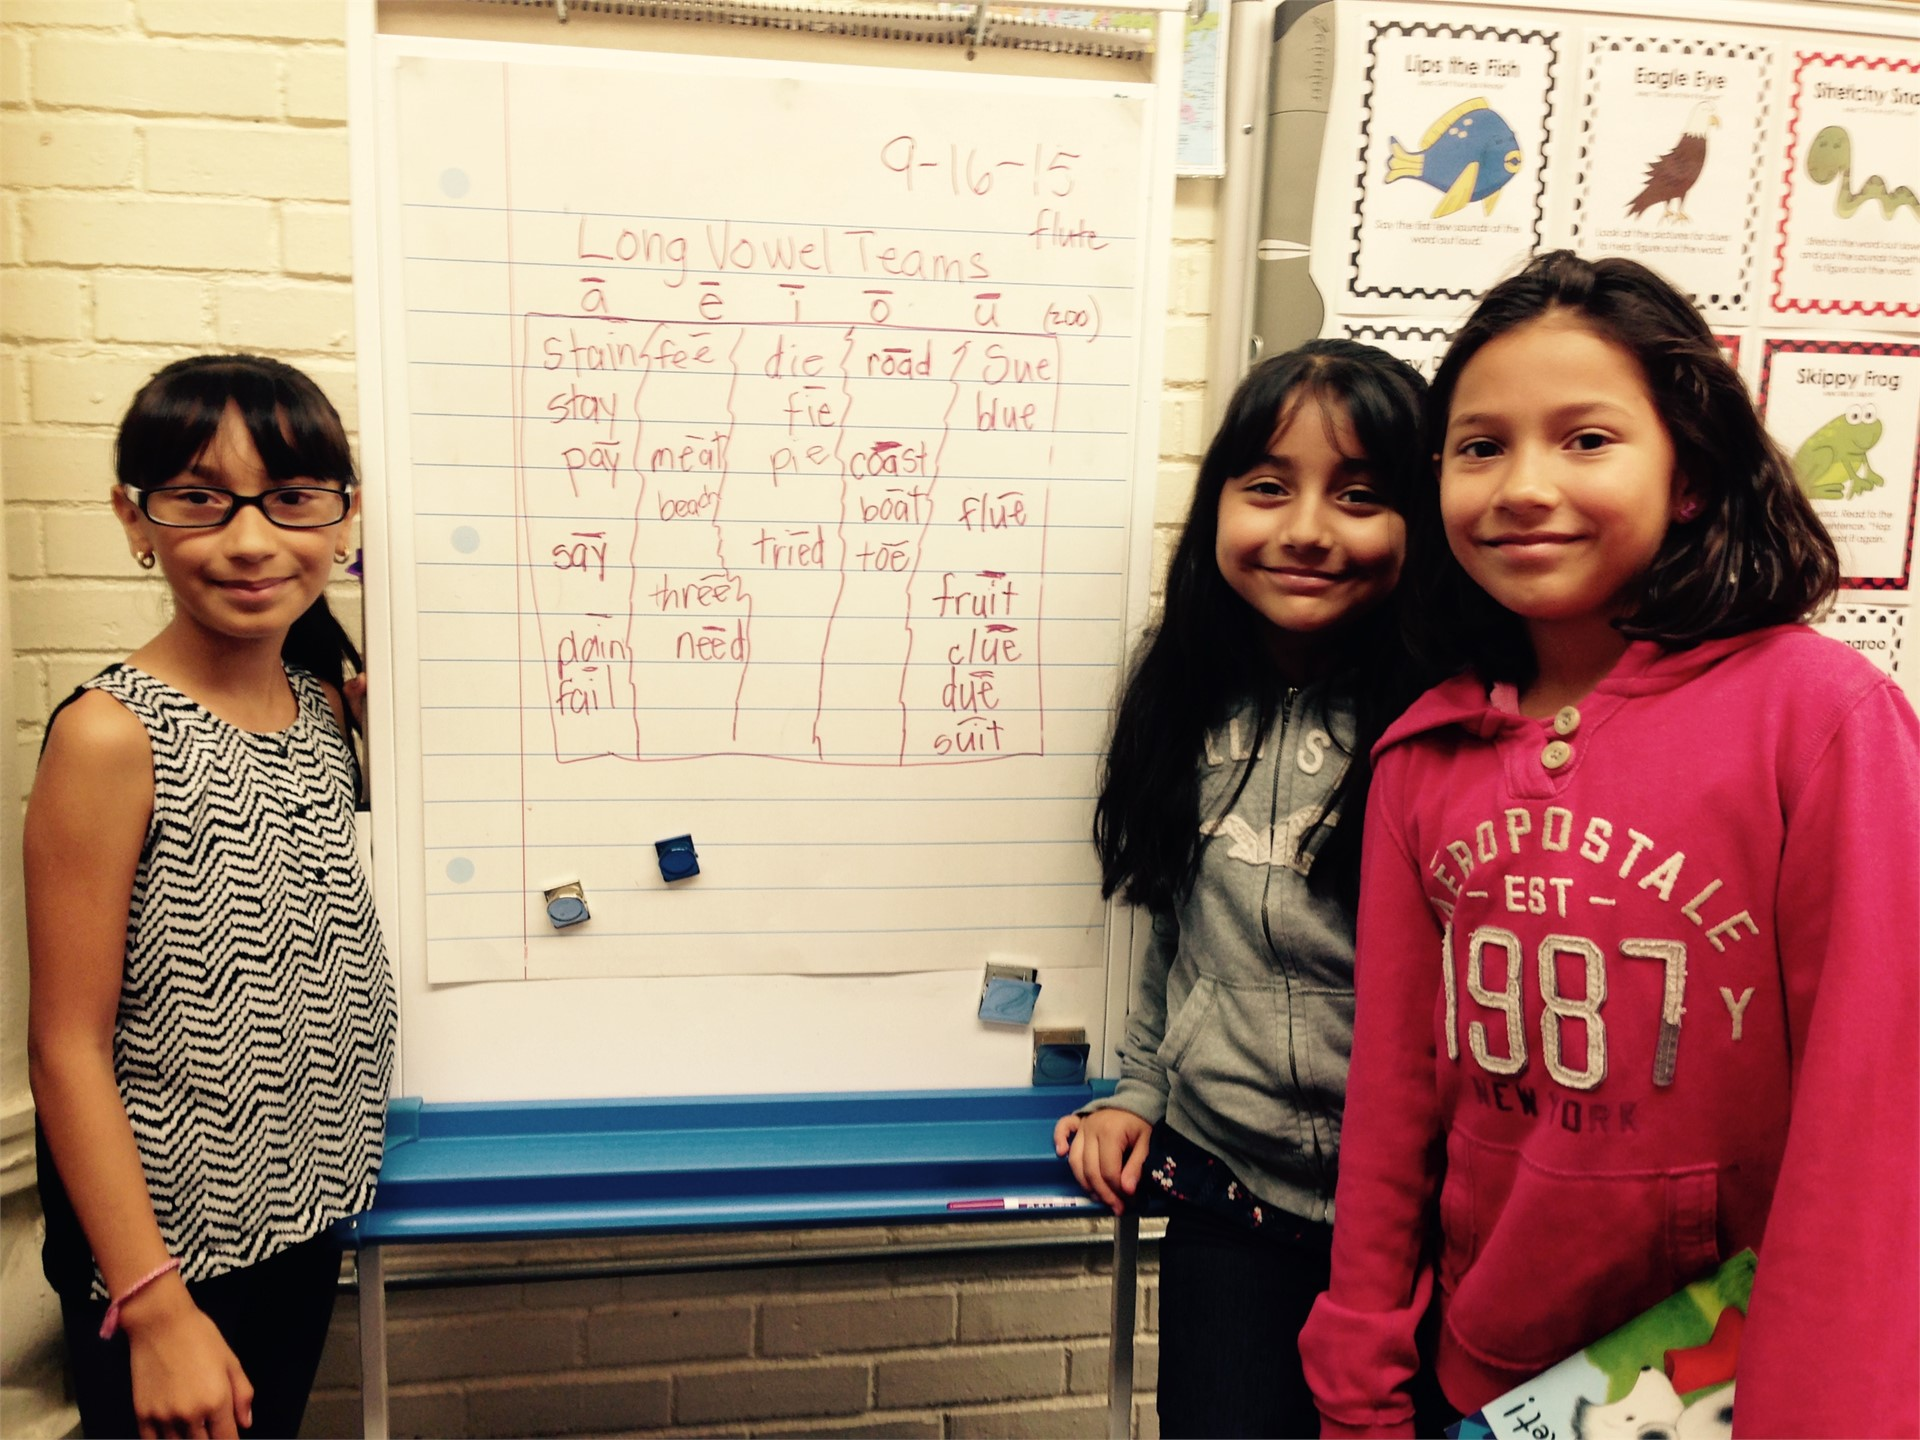 Long Vowel Teams